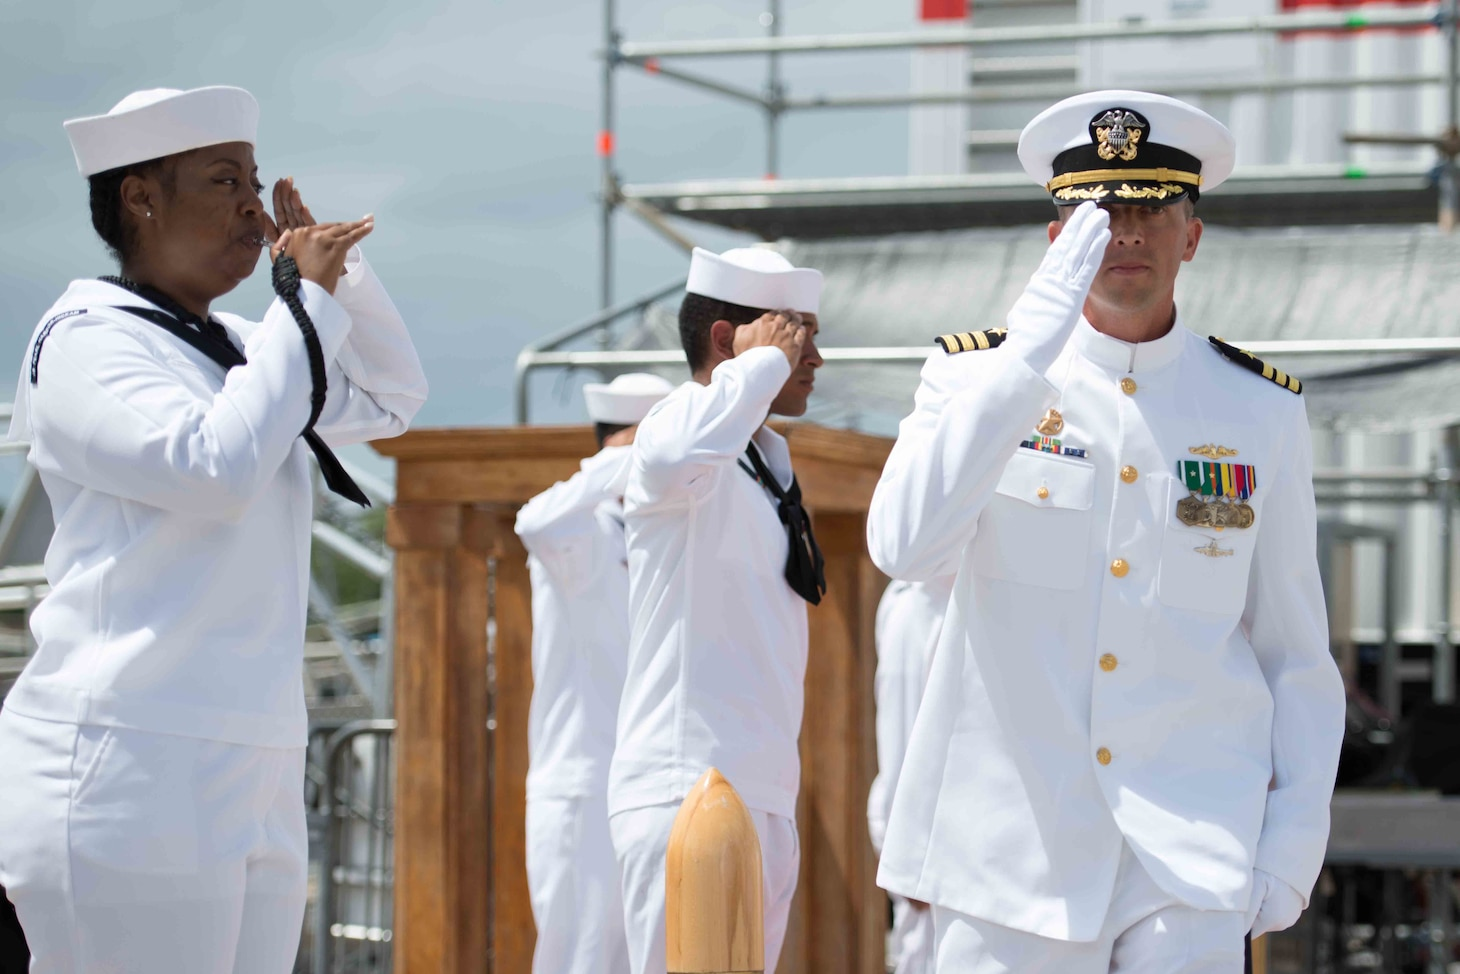 160830-N-LY160-198 JOINT BASE PEARL HARBOR-HICKAM, Hawaii (August 30, 2016) Cmdr. Chad Hardt, commanding officer of the Los Angeles-class fast-attack submarine USS Tucson (SSN 770), is piped ashore at the conclusion of the change of command ceremony in Joint Base Pearl Harbor-Hickam. Hardt relieves Cmdr. Michael Beckette as the 10th commanding officer of the USS Tucson. (U.S. Navy photo by Mass Communication Specialist 2nd Class Michael H. Lee)